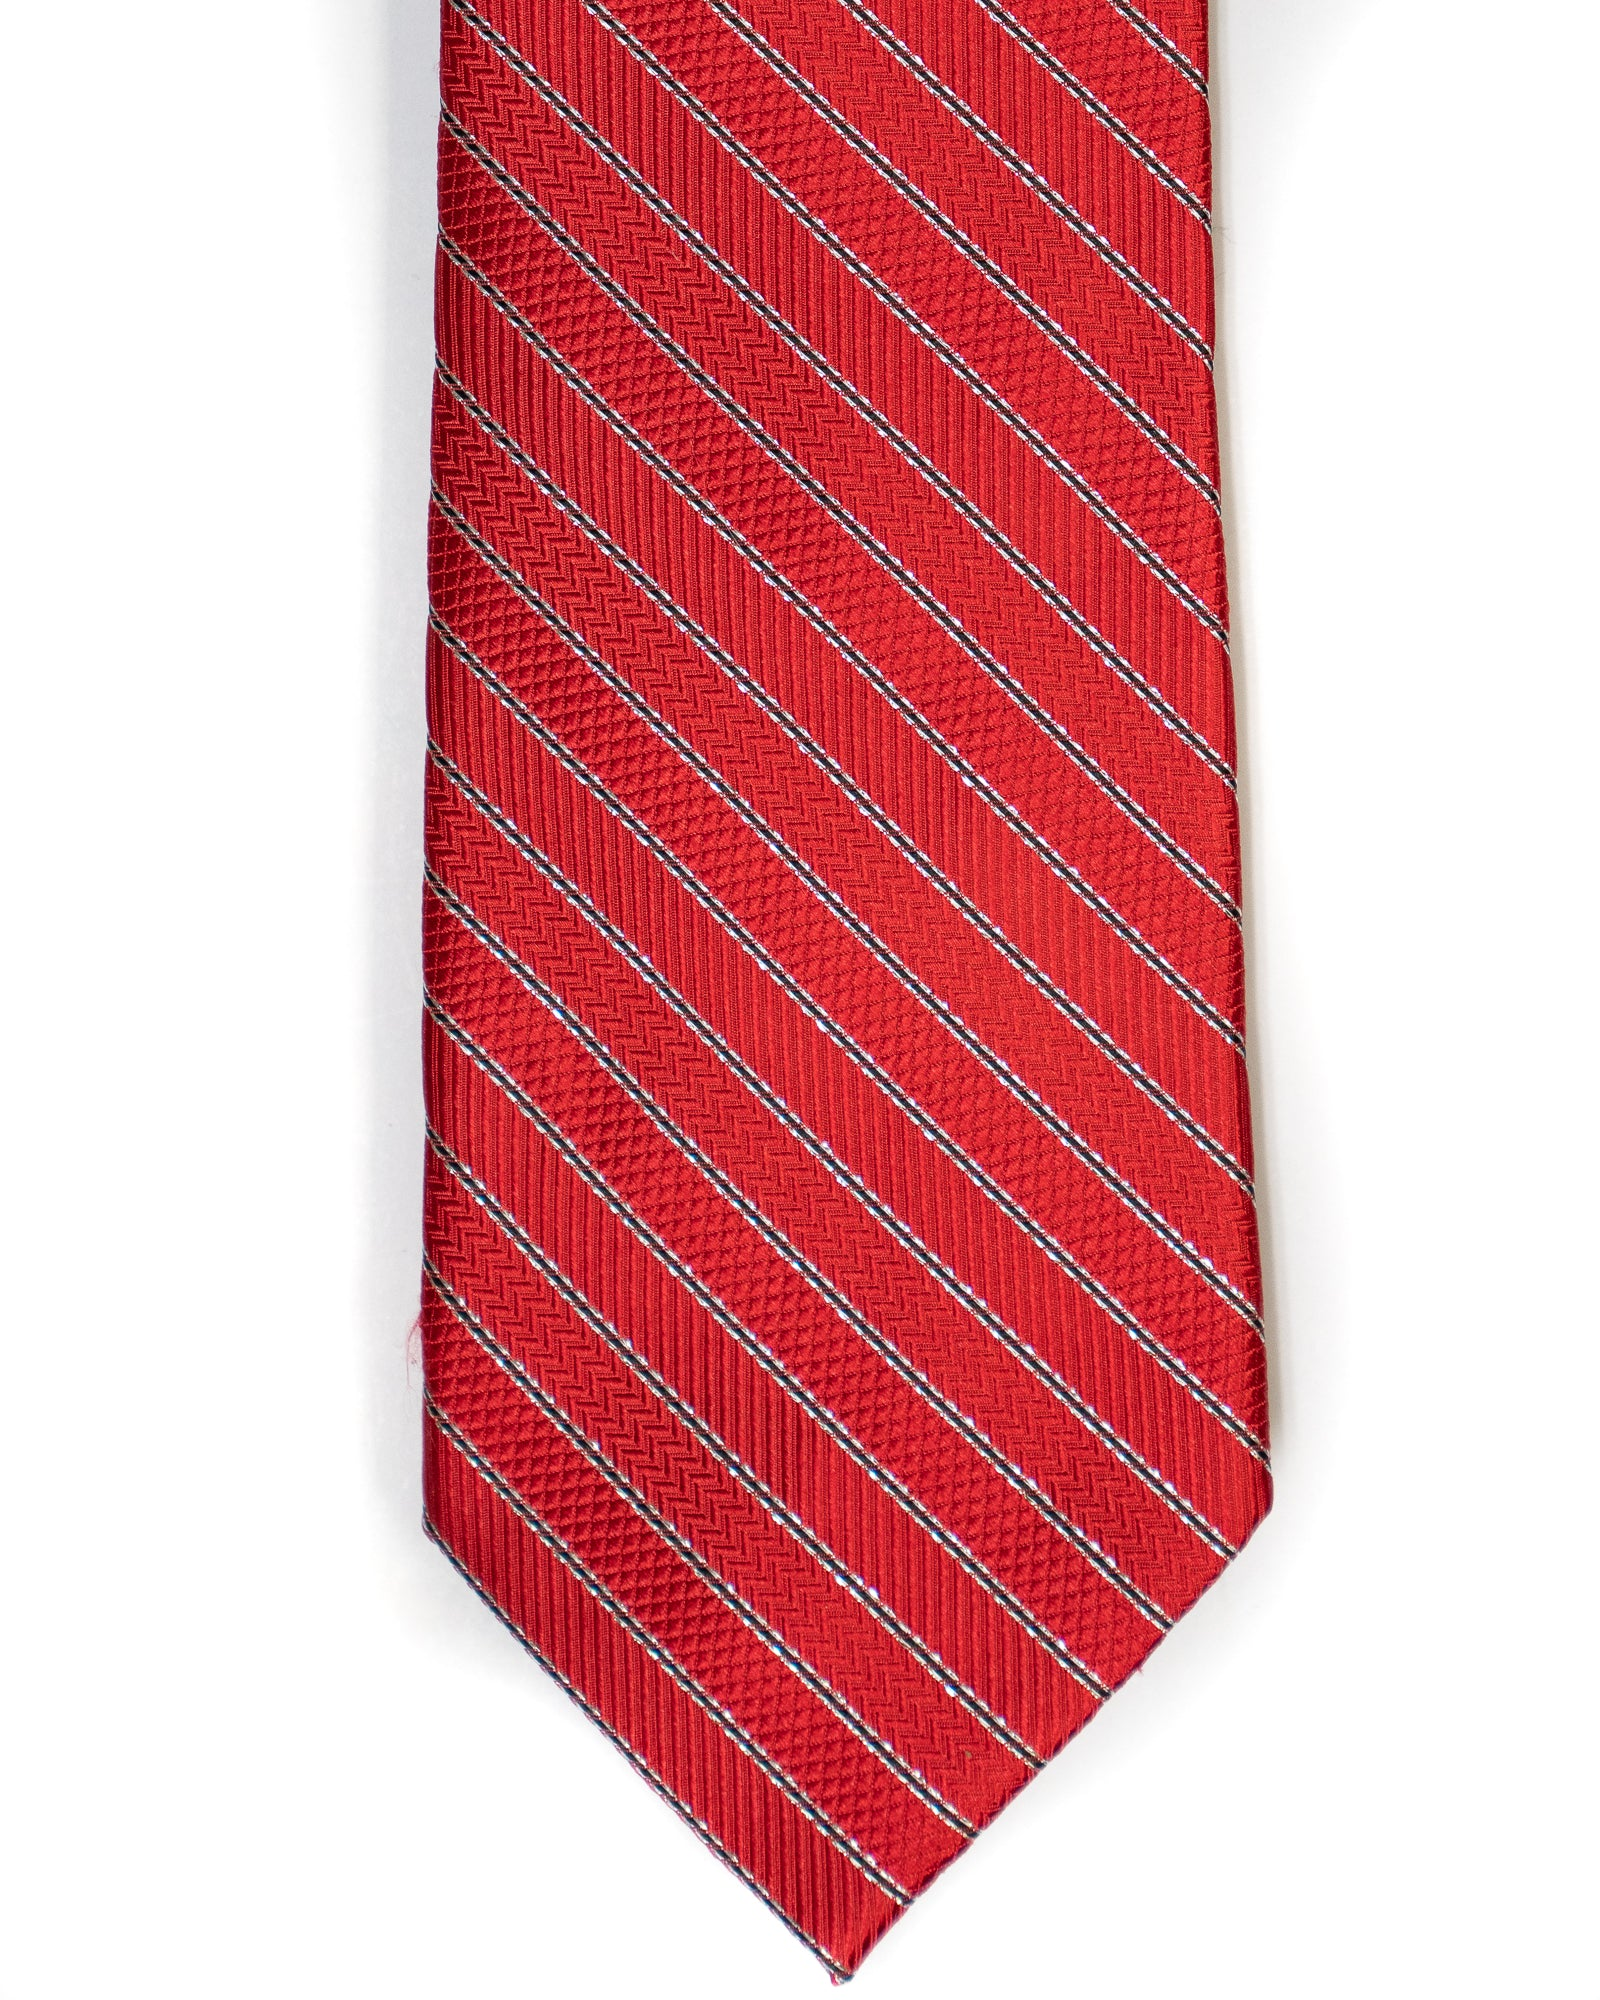 Silk Tie In Red With Black Stripes - Rainwater's